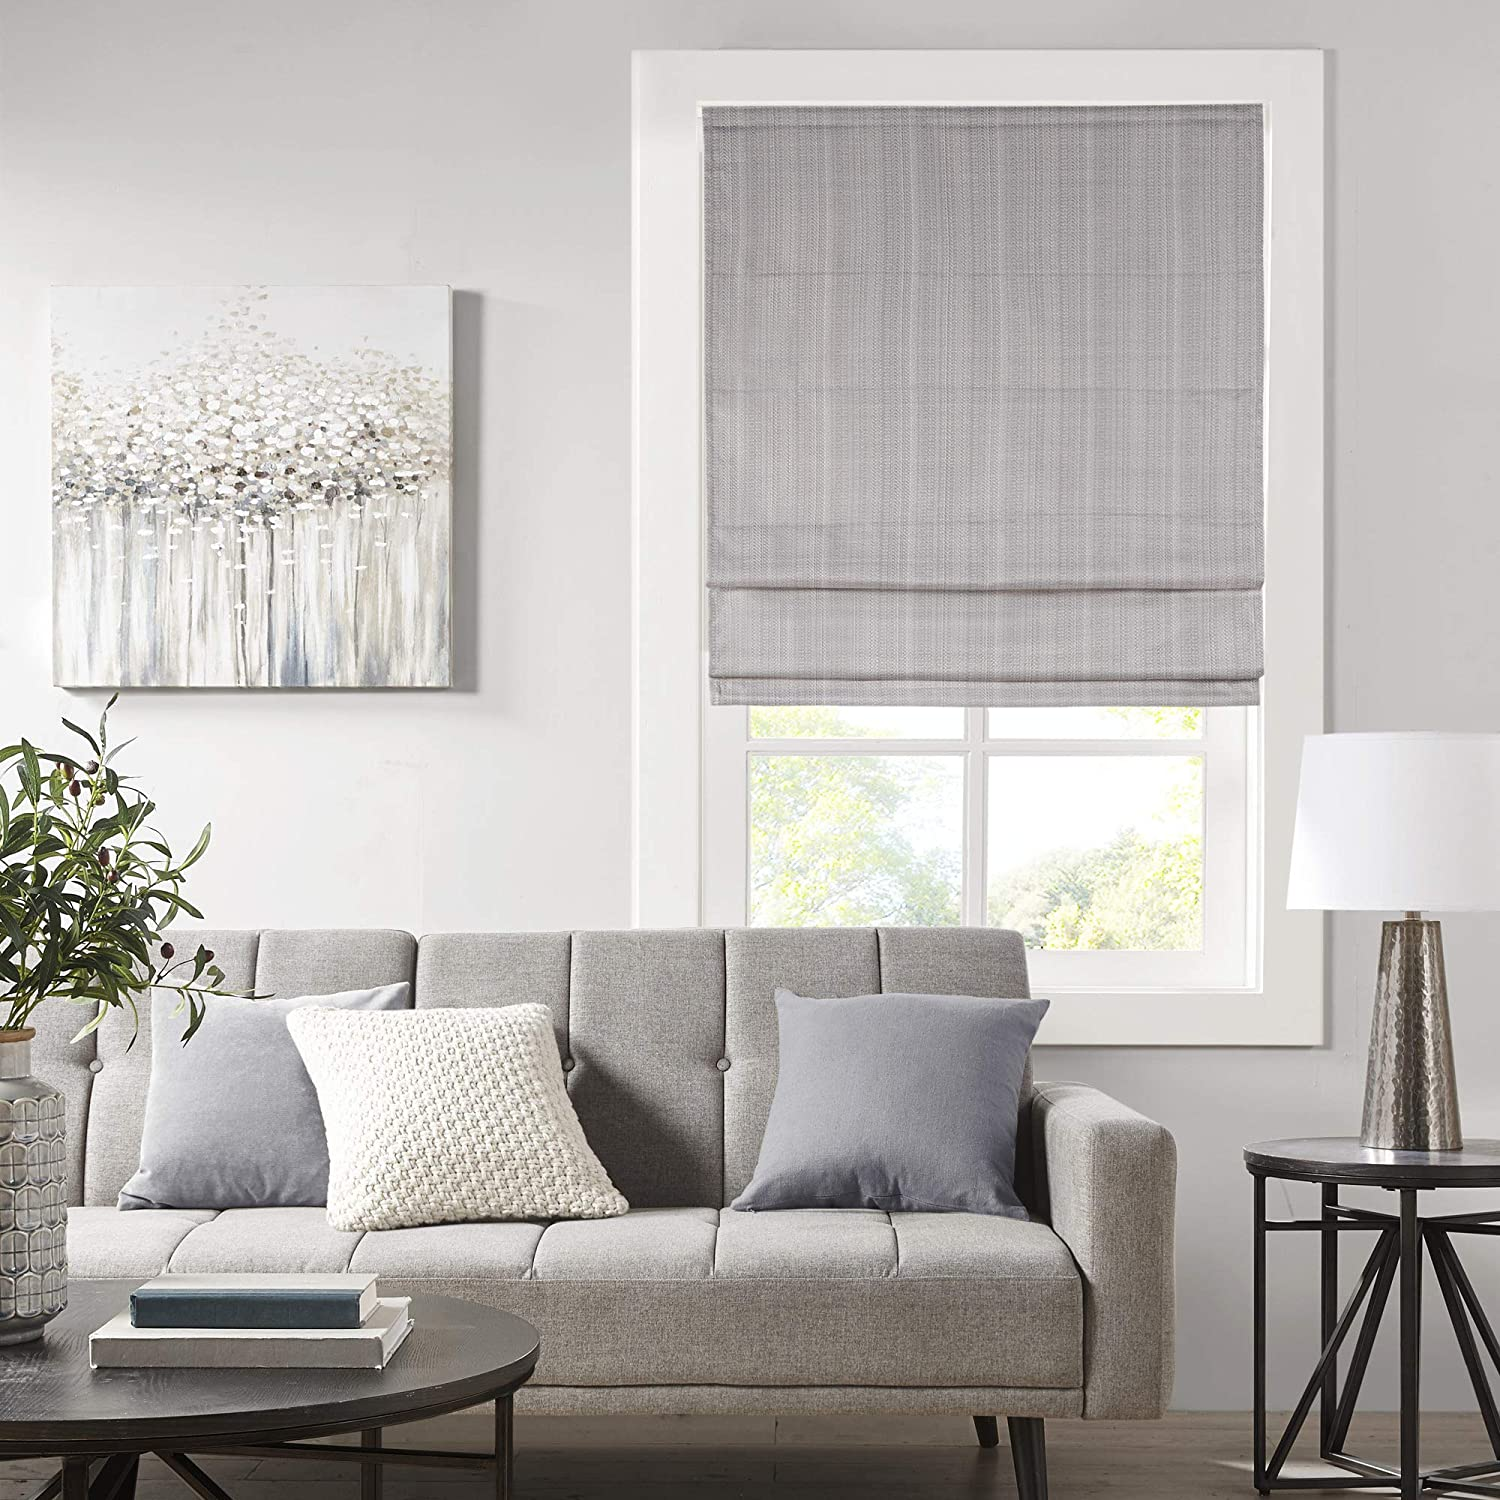 "Madison Park Galen Cordless Roman Shades - Fabric Privacy Panel Darkening, Energy Efficient, Thermal Insulated Window Blind Treatment, for Bedroom, Living Room Decor, 33"" x 64"", Grey"